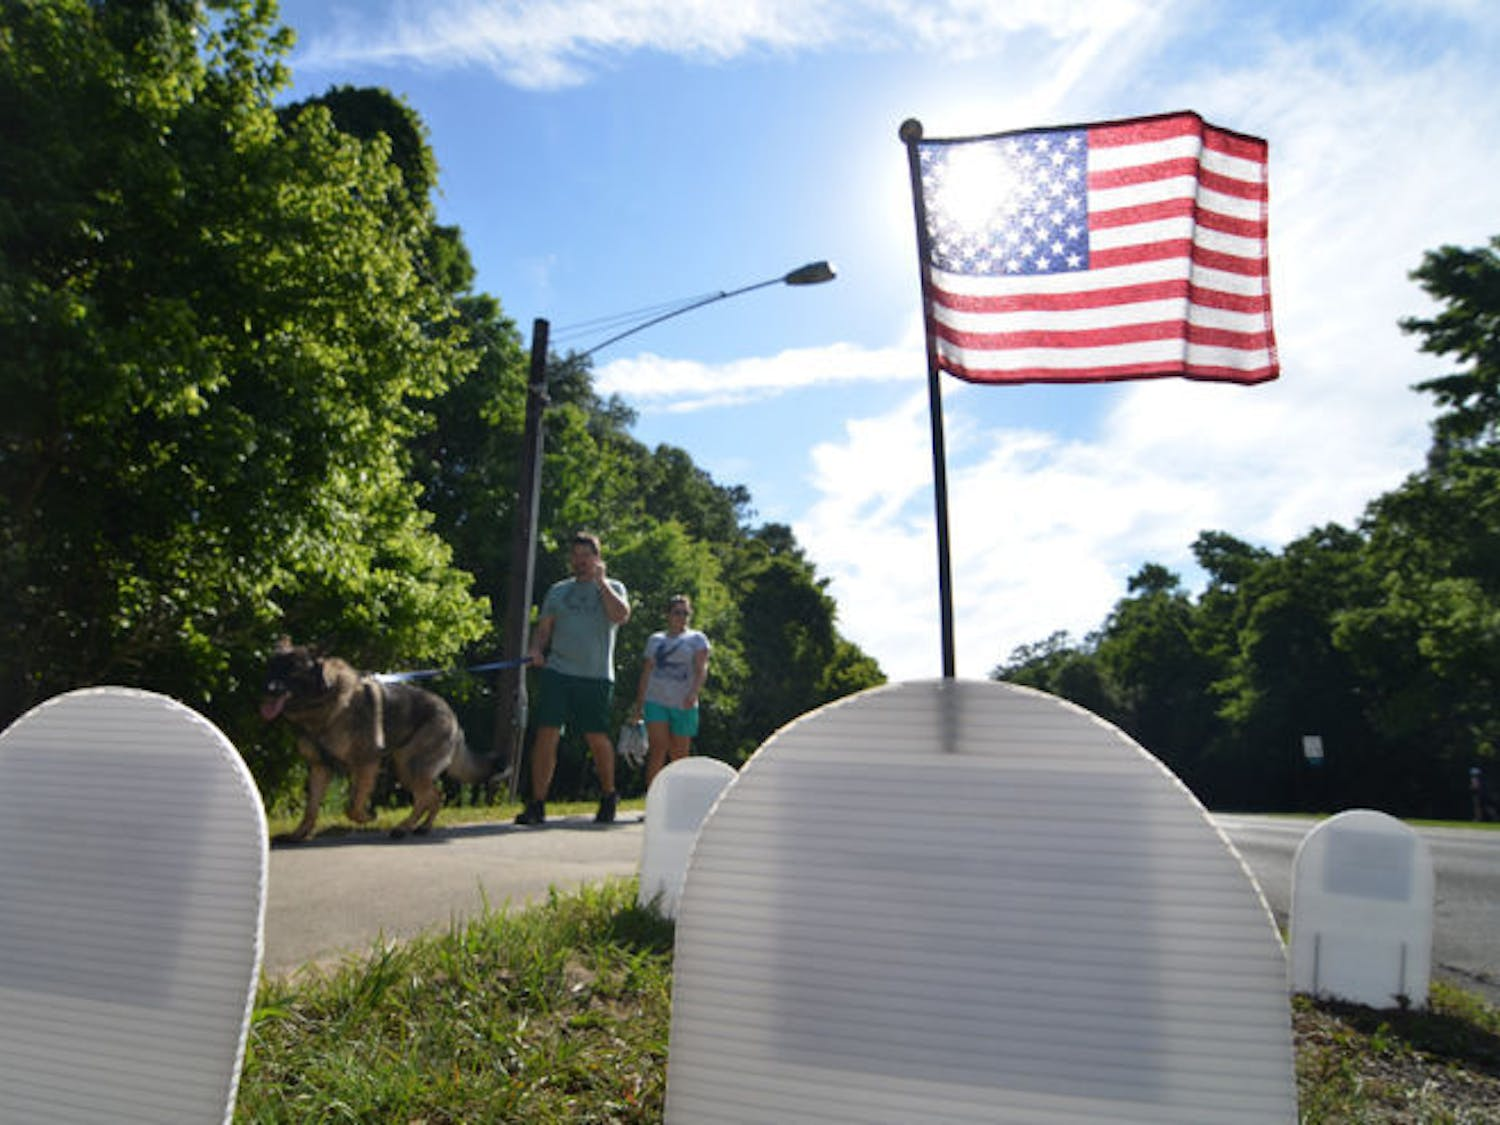 Passers by view thousands of paper tomb stones representing the U.S. Department of Defense Iraq and Afghanistan casualties on NW 8th Avenue on Monday in Gainesville, Fla.